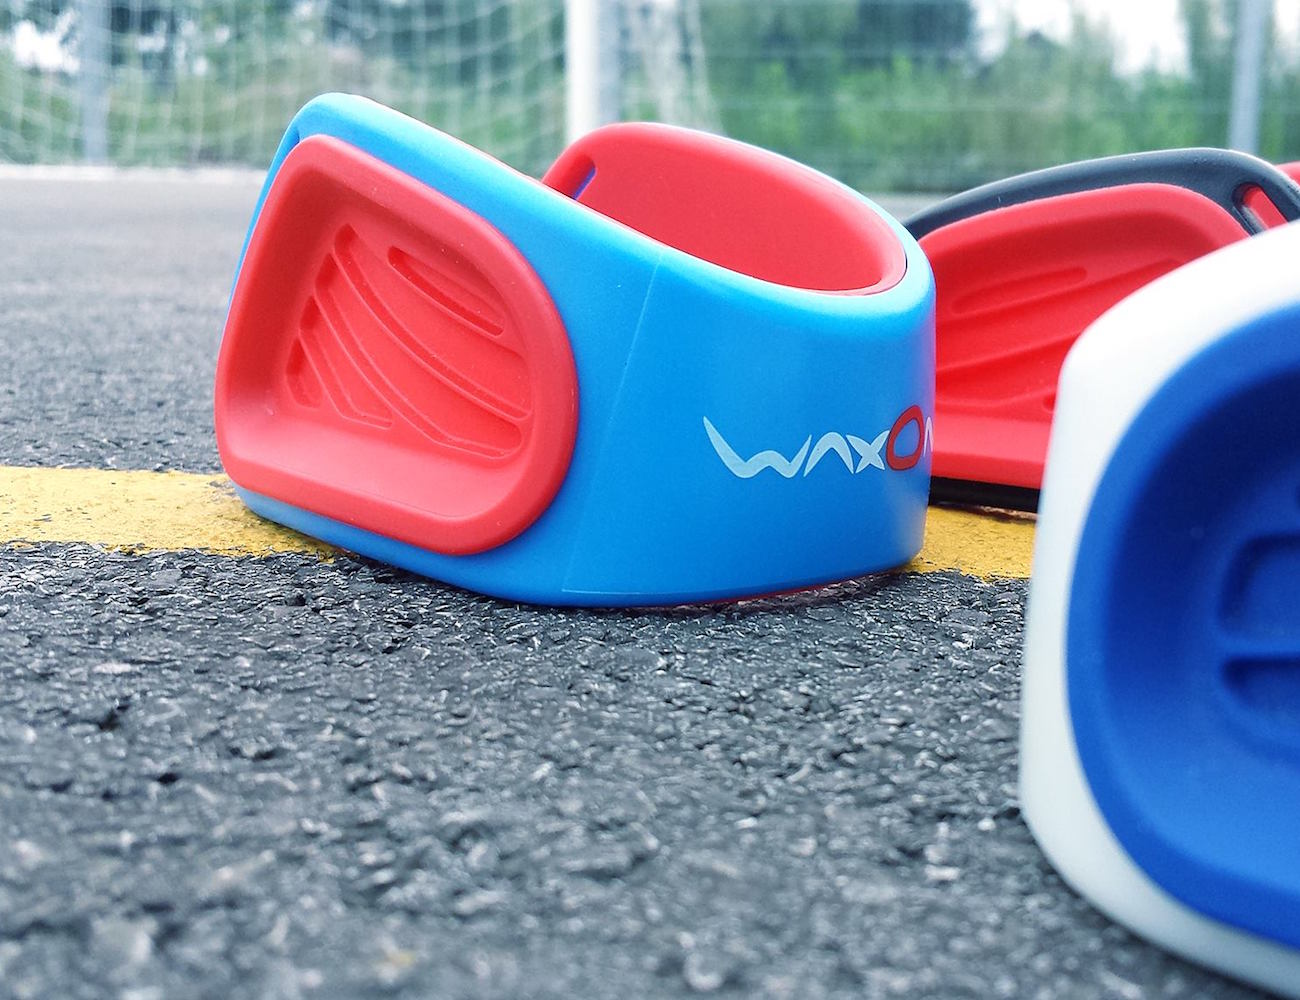 WaxOn – Easily Accessible Wax for Handball Players